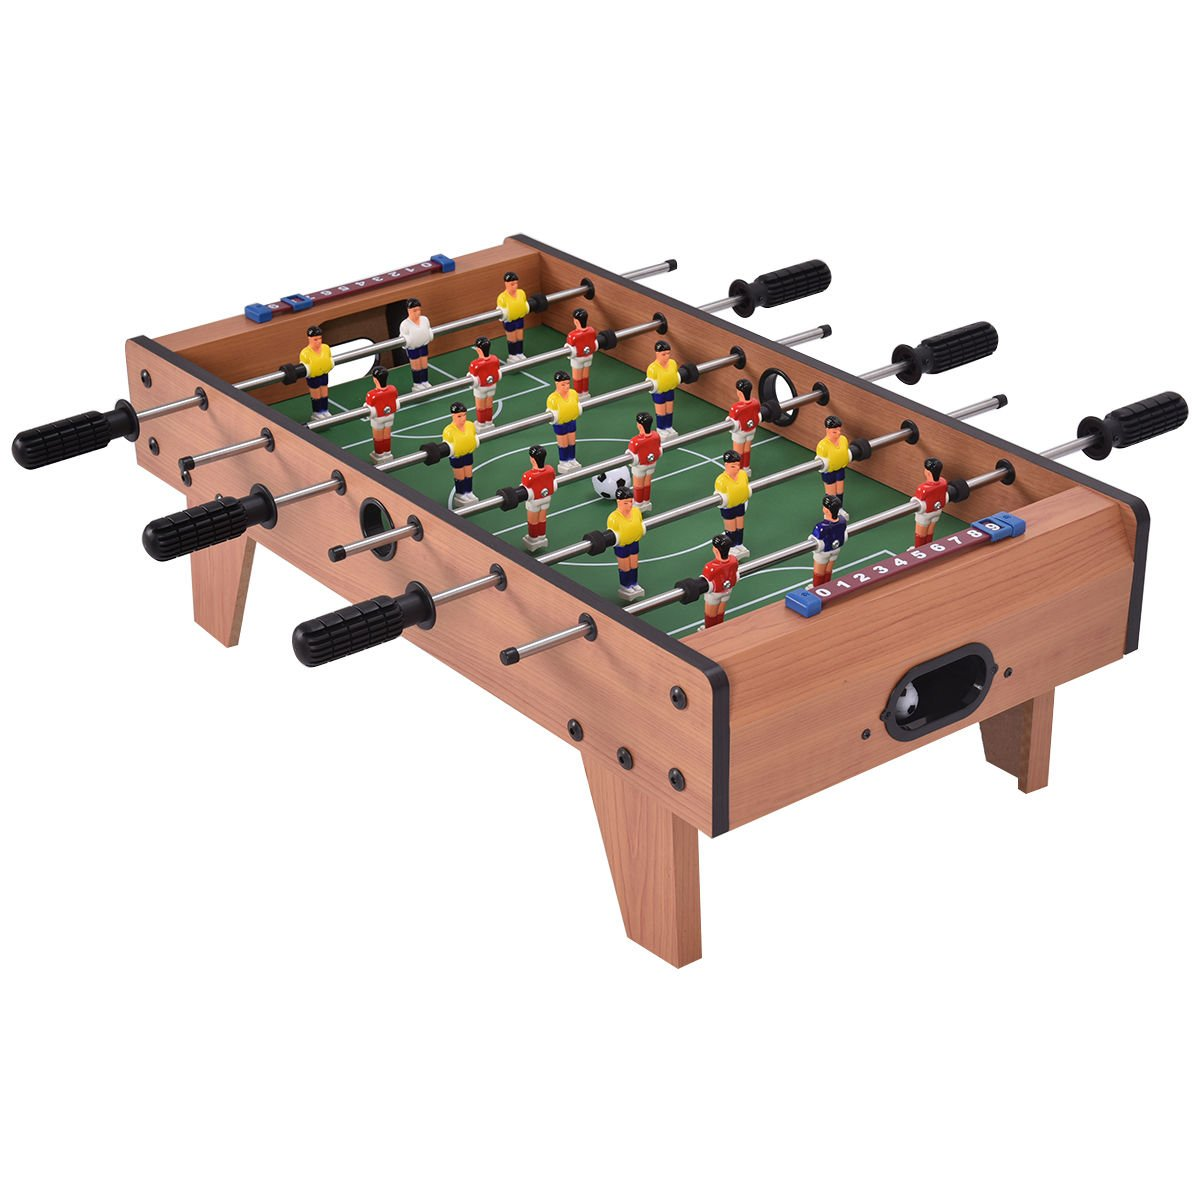 Giantex 27'' Foosball Table, Easily Assemble Wooden Soccer Game Table w/Footballs, Indoor Table Soccer Set for Kids by Giantex